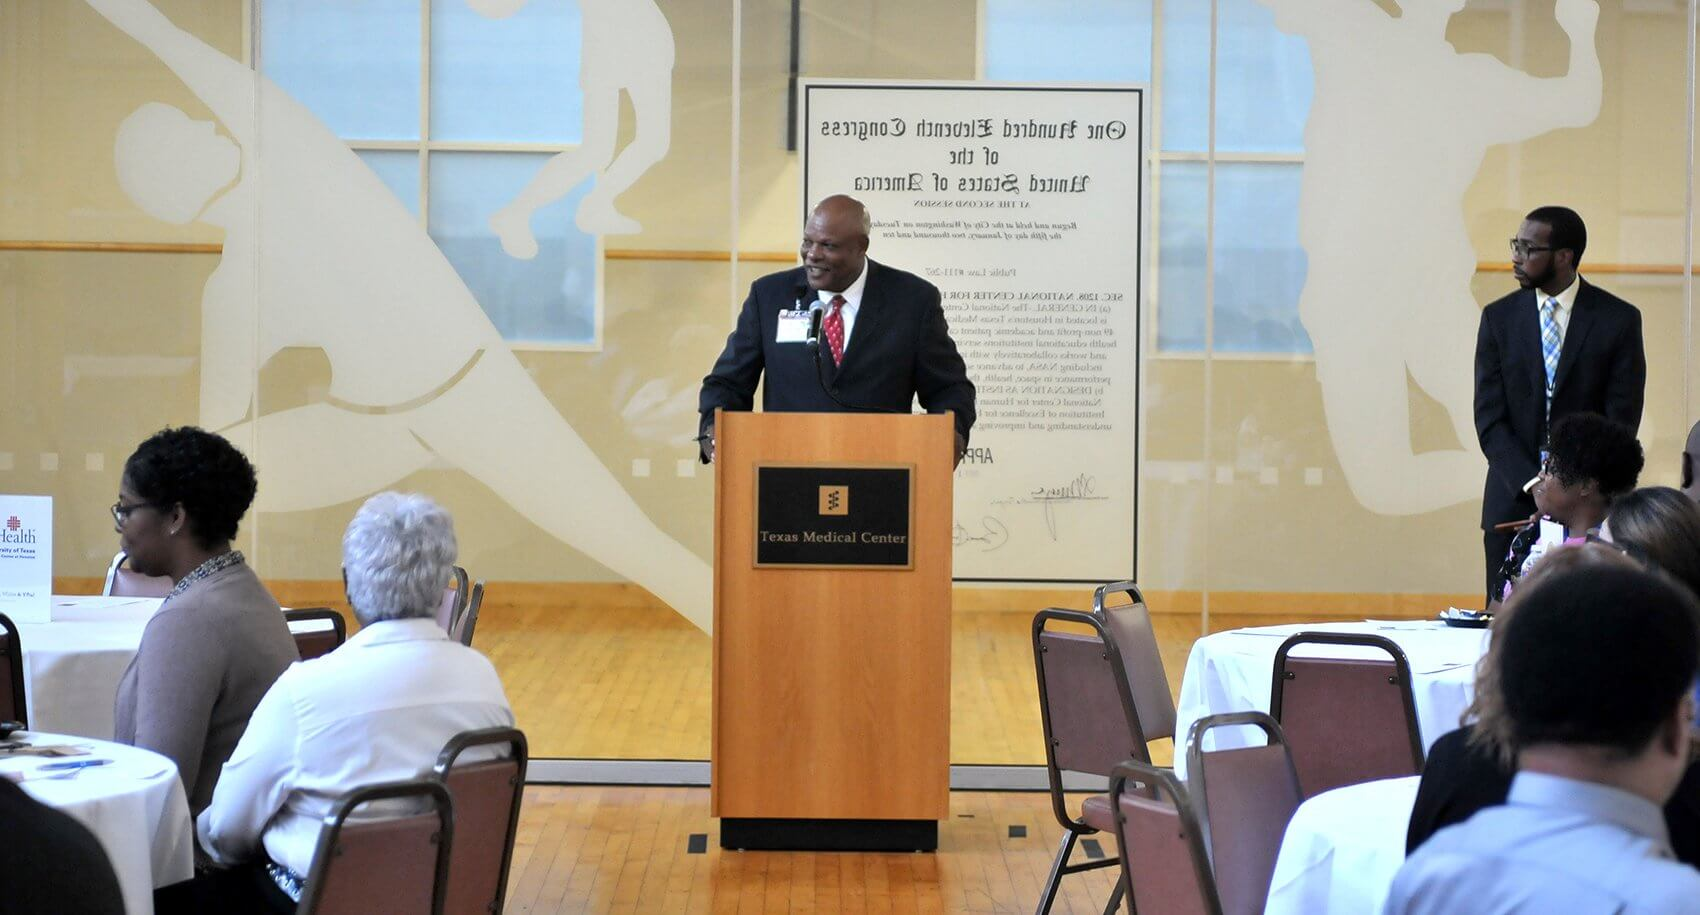 Larry D. Perkins, Ph.D., executive director of HR talent organization at MD Anderson and a veteran gave welcome remarks.